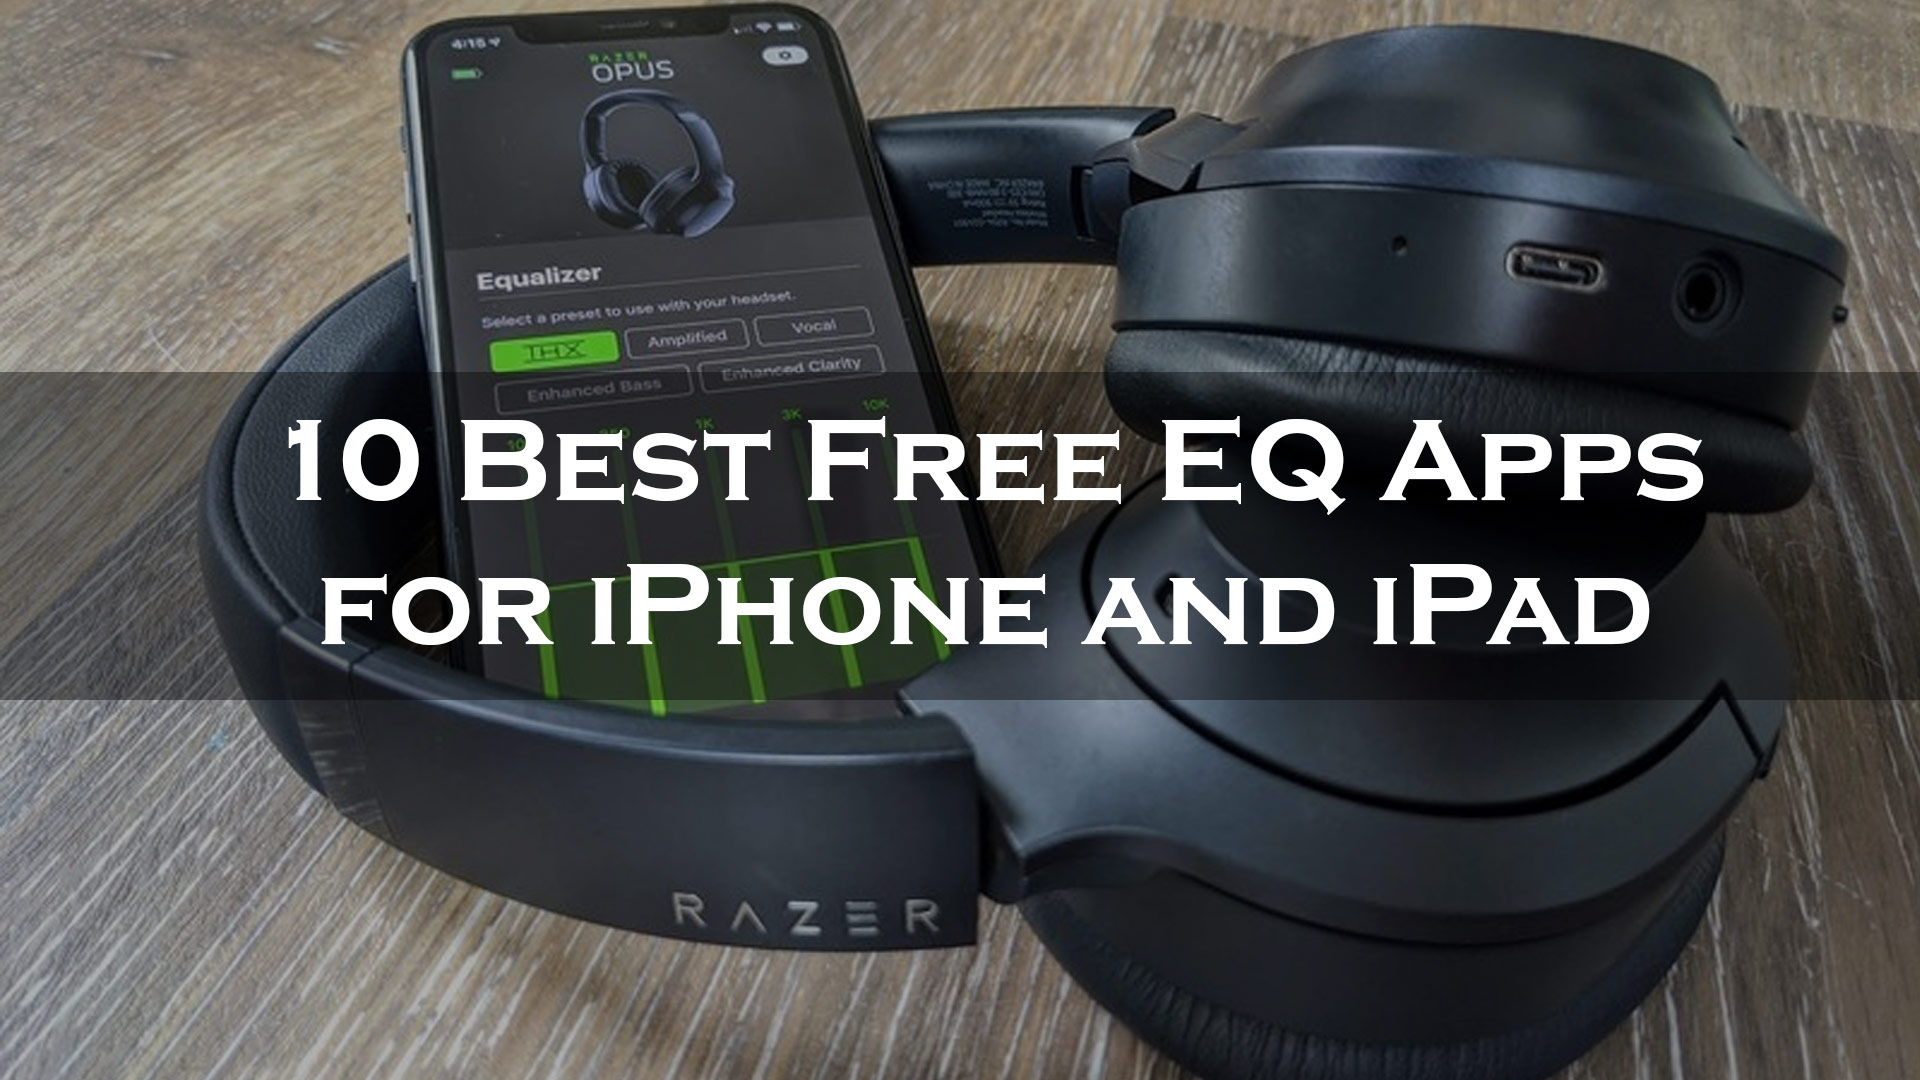 10 Best Free EQ Apps for iPhone and iPad